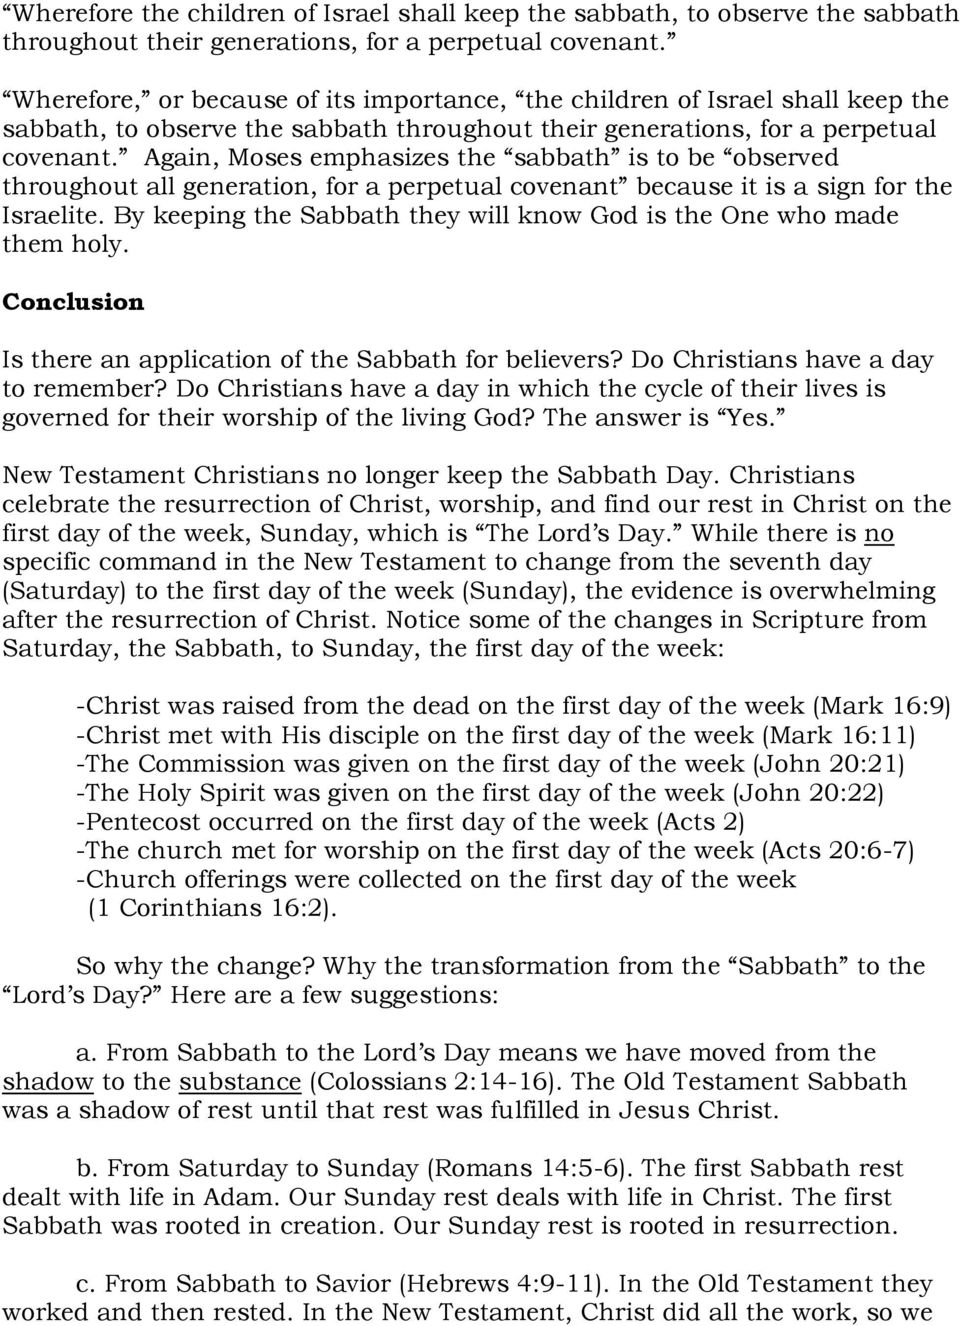 Again, Moses emphasizes the sabbath is to be observed throughout all generation, for a perpetual covenant because it is a sign for the Israelite.